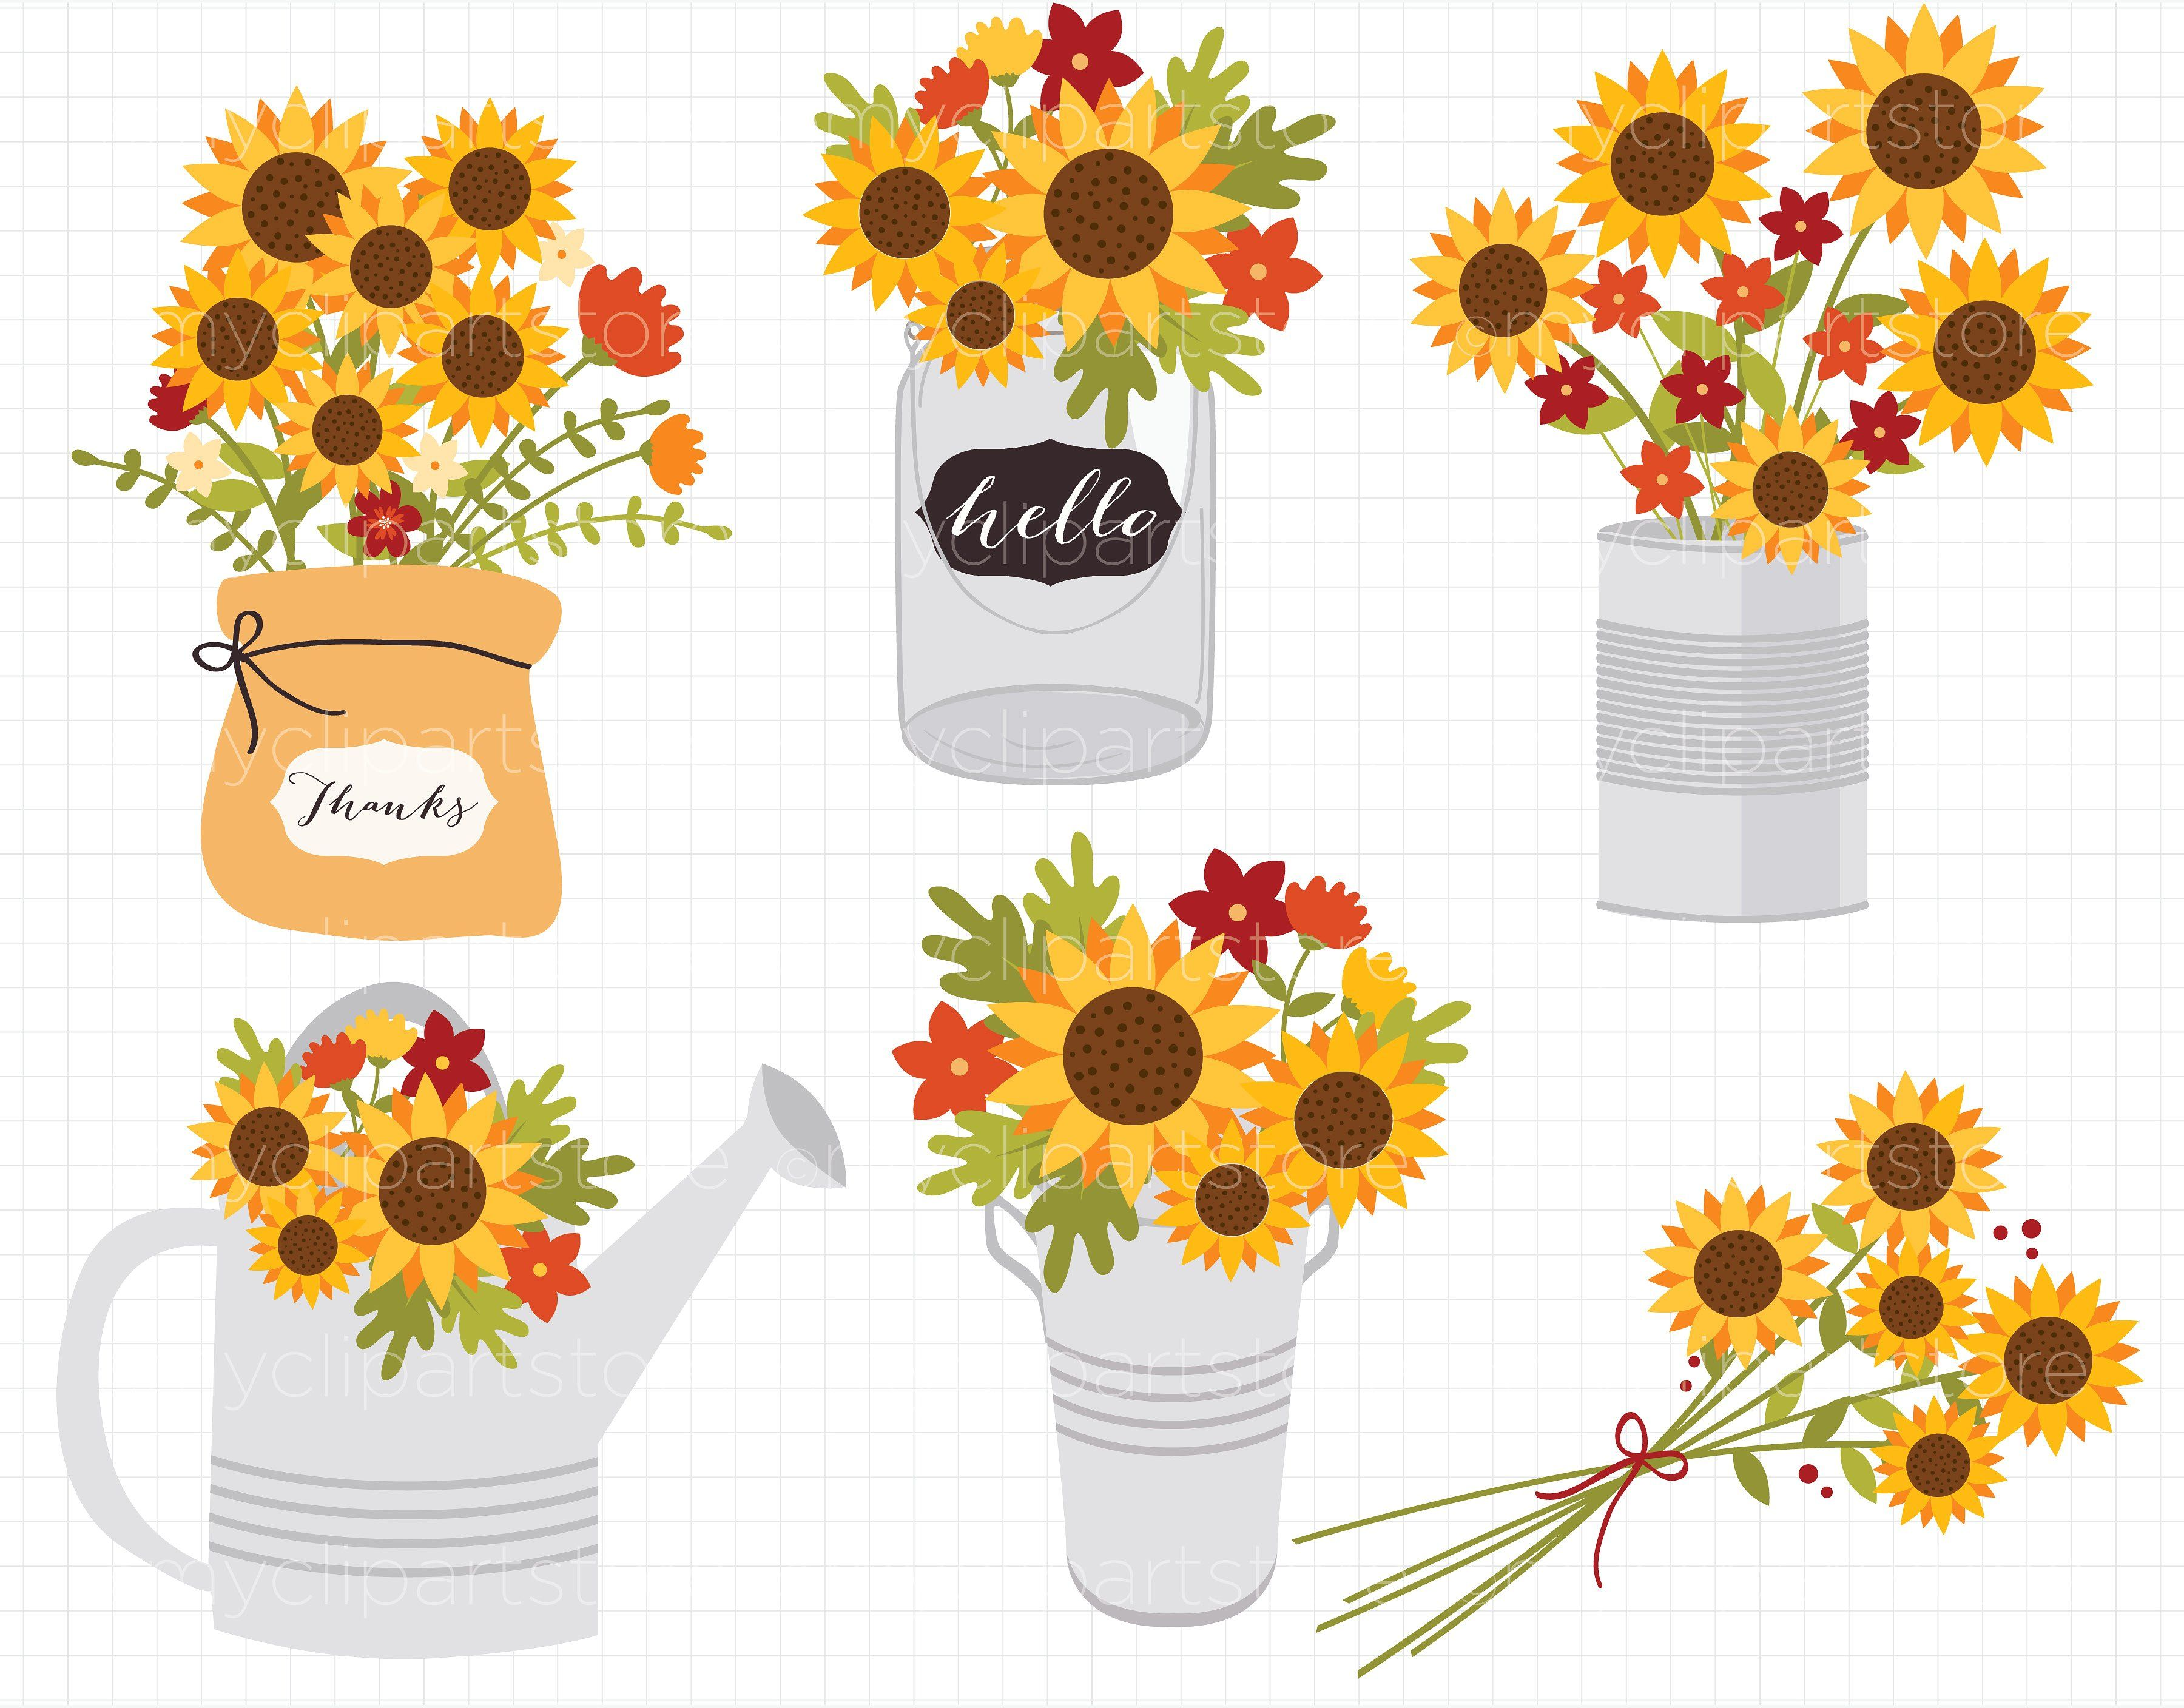 jpg royalty free library Sunflowers clipart thanksgiving. Fall flowers autumn .